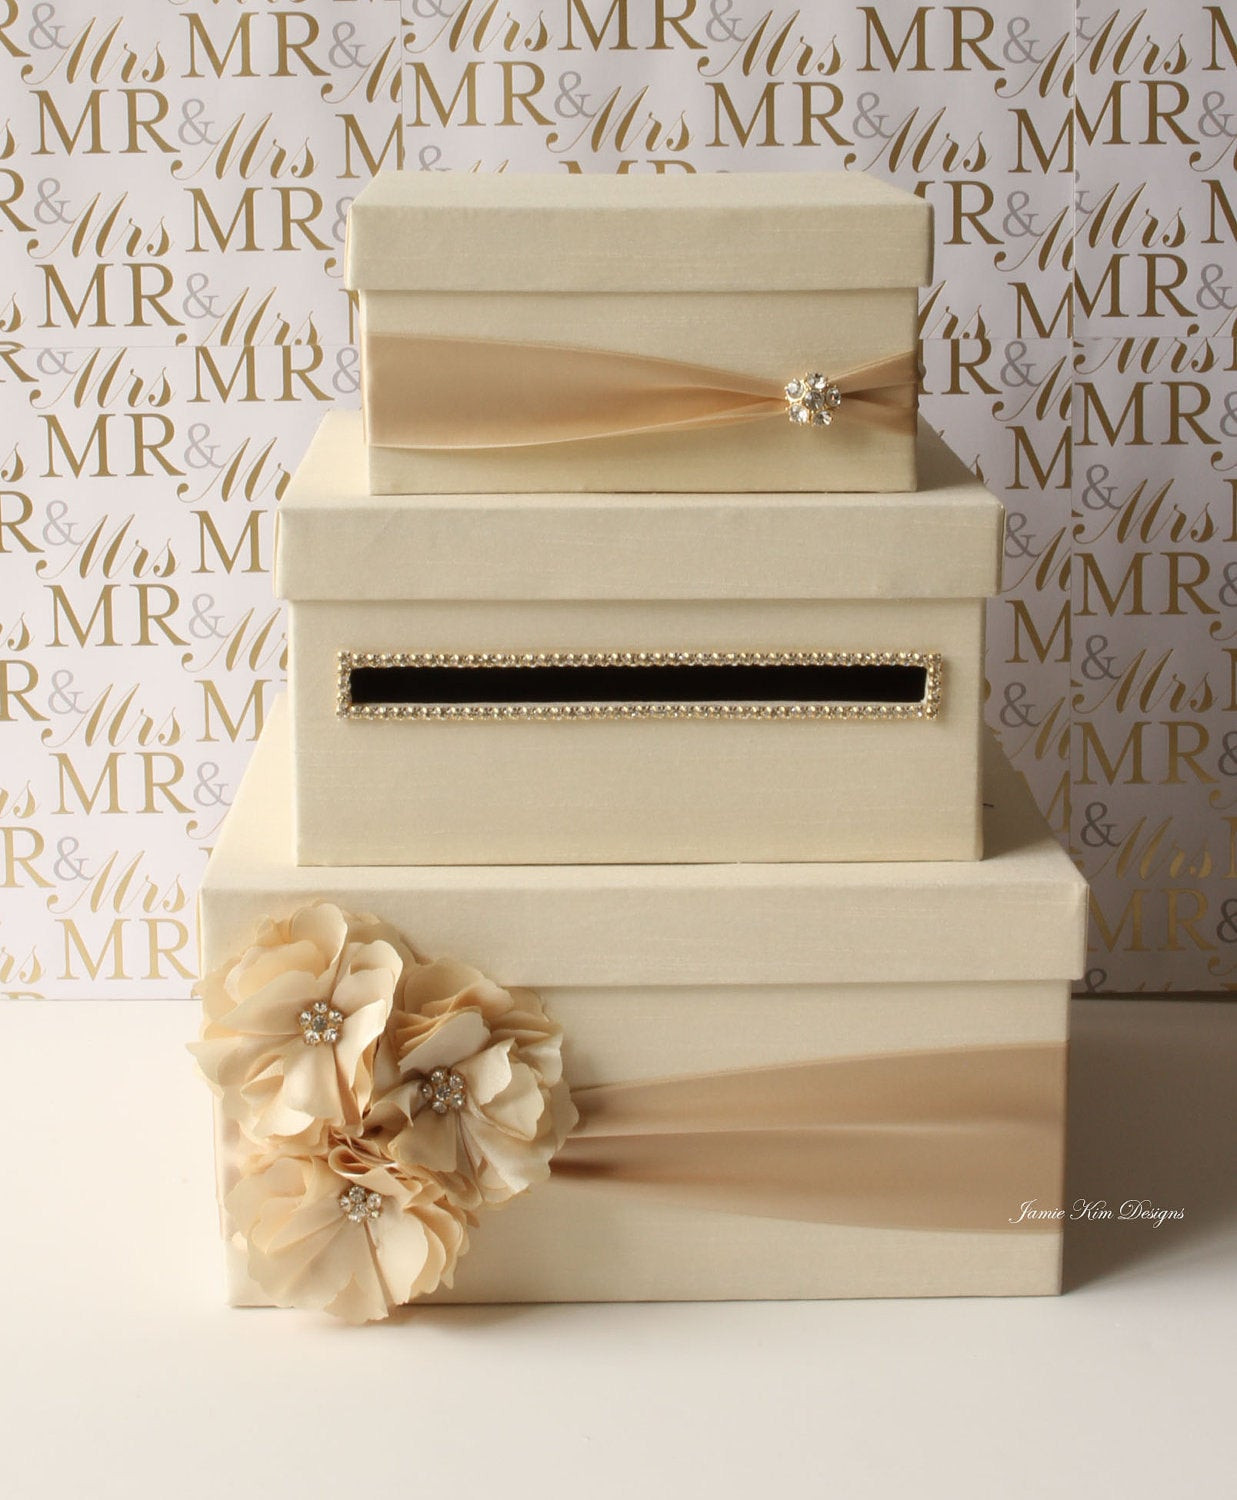 Best ideas about Wedding Gift Boxes Ideas . Save or Pin Wedding Card Box Money Box Gift Card Holder choose your Now.